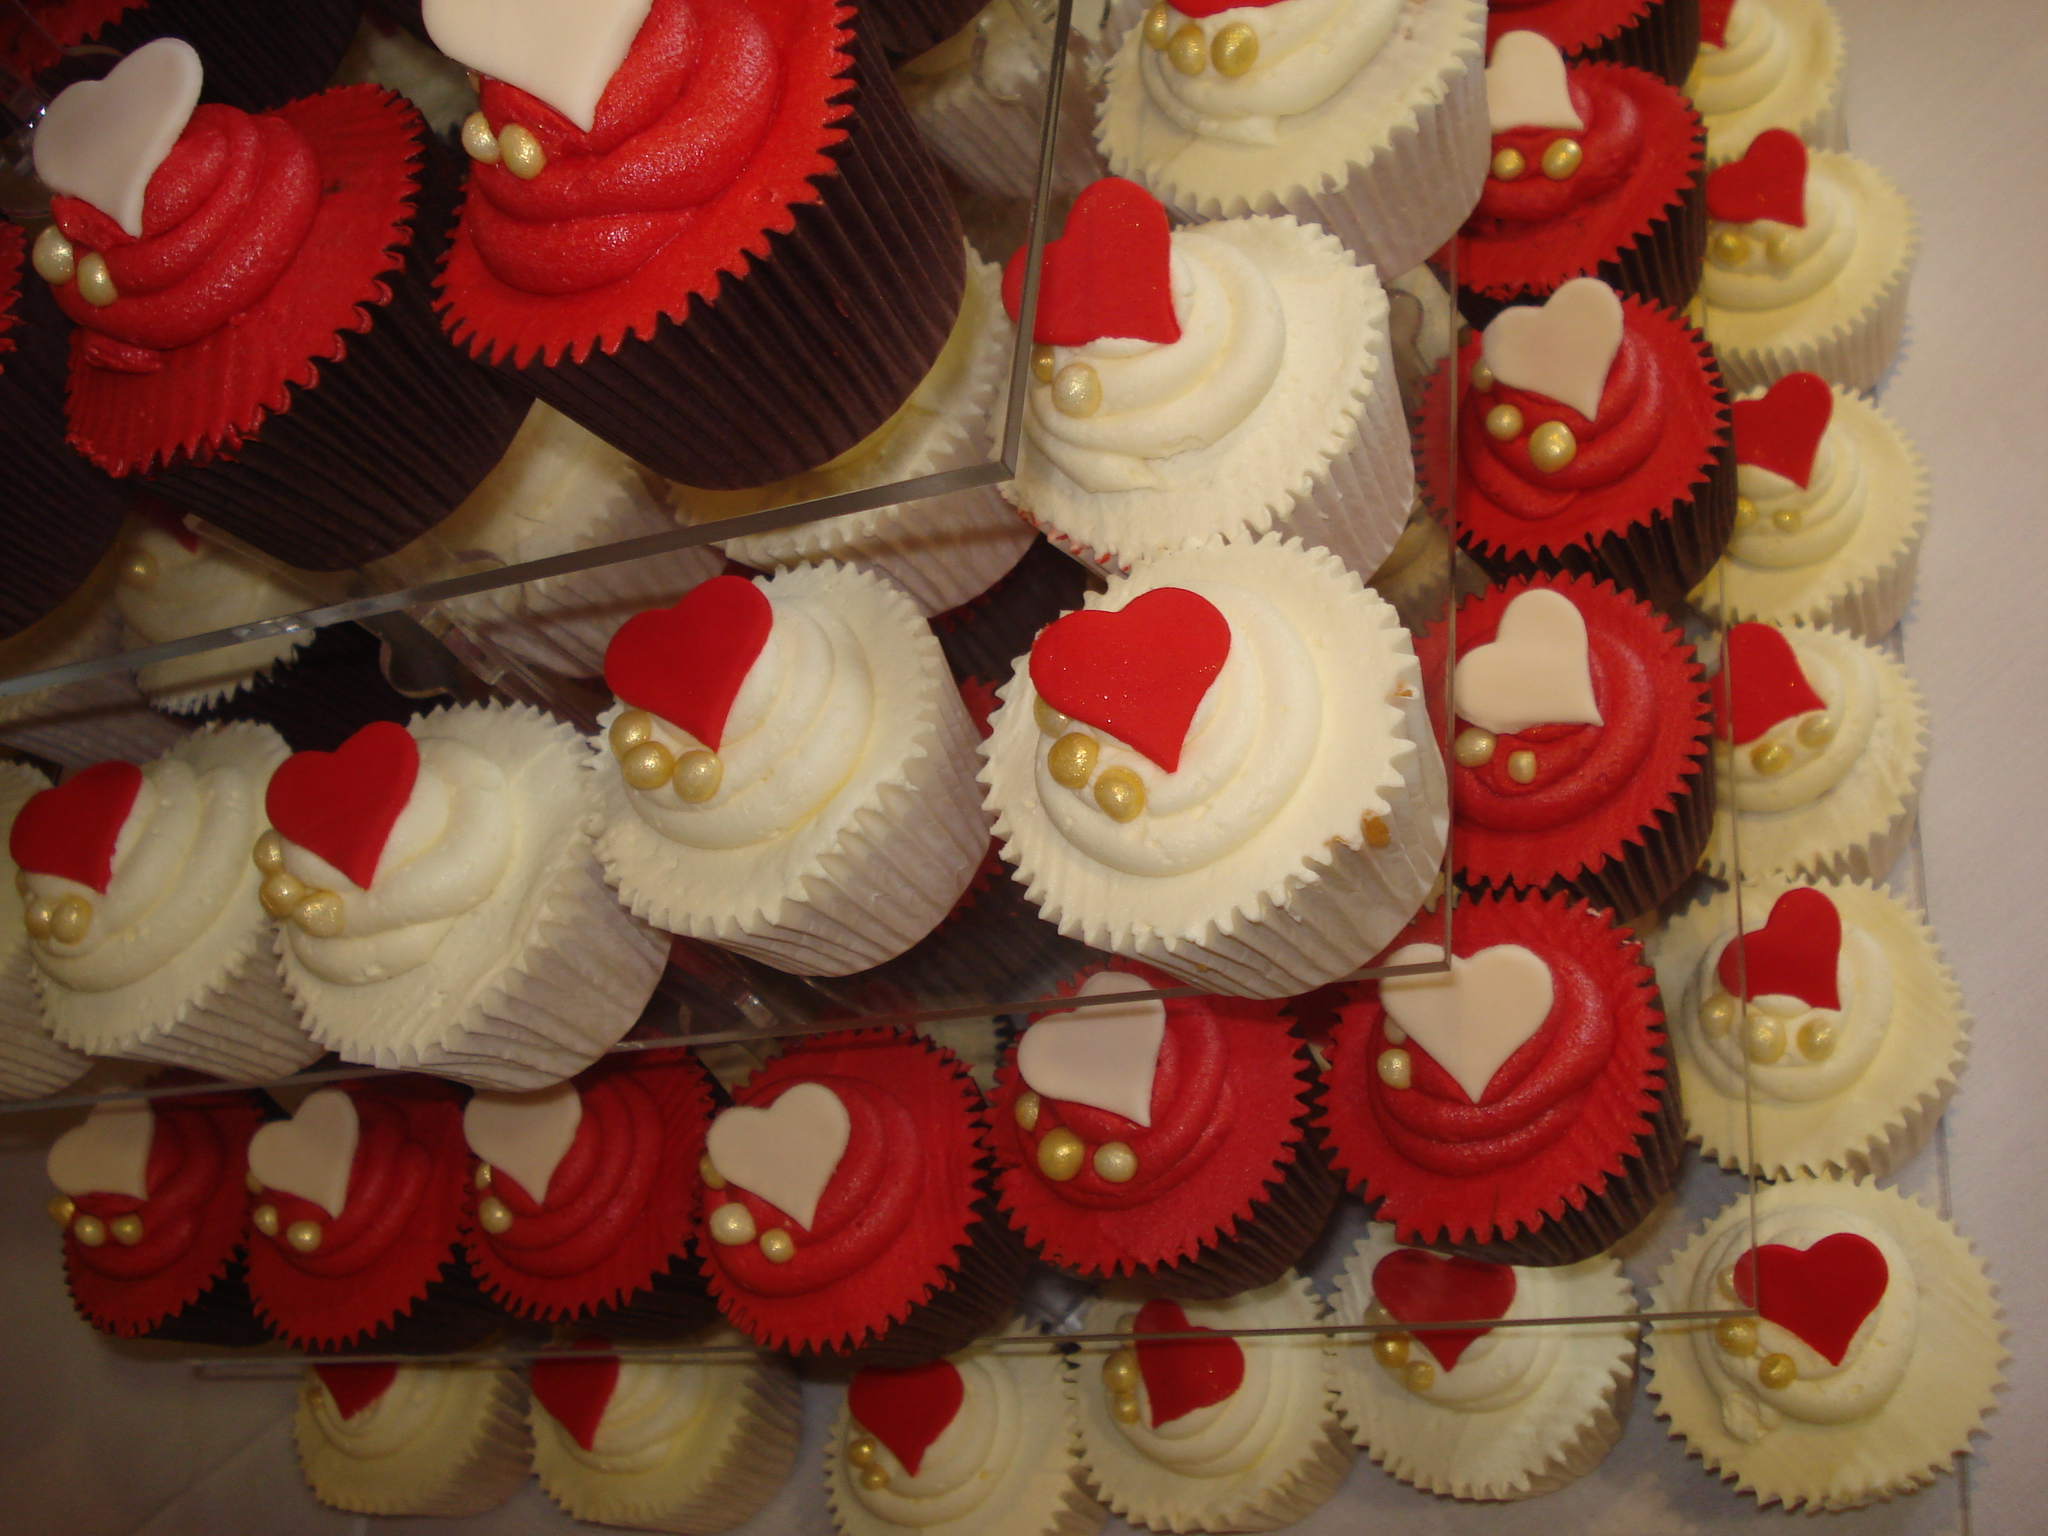 Chinese red and ivory wedding cupcakes – Cakes by Lizzie